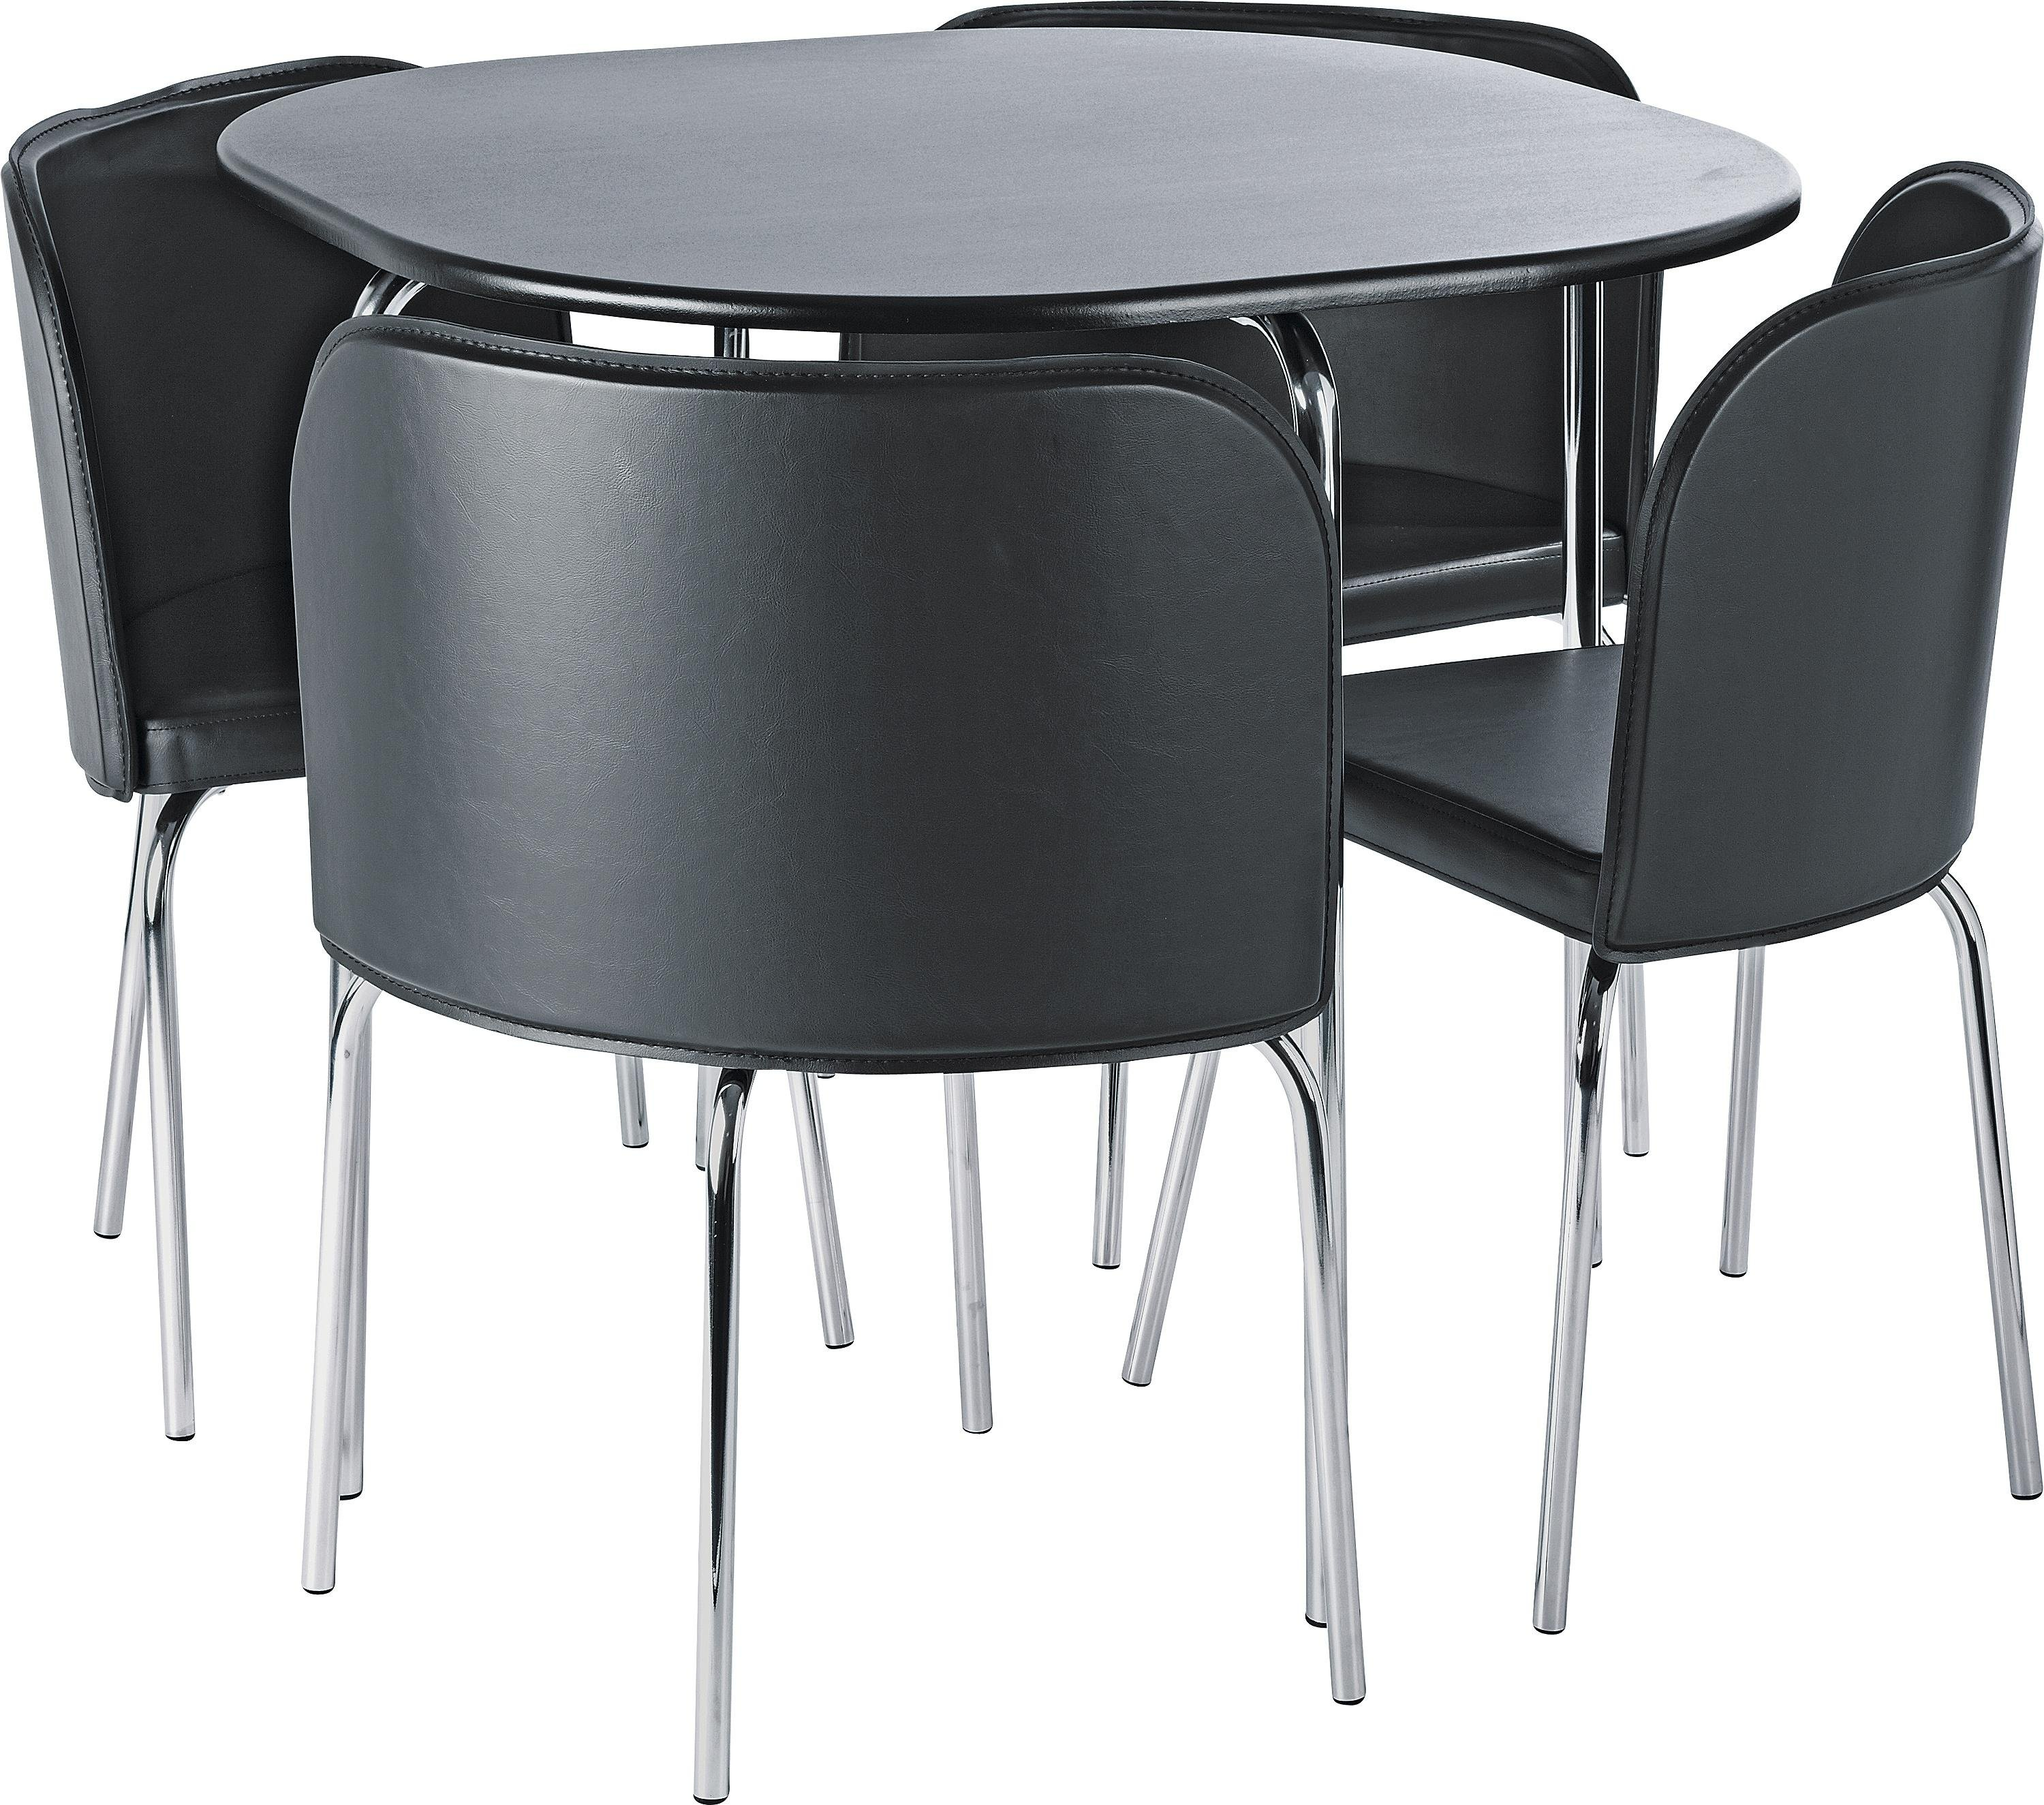 Buy Hygena Amparo Dining Table and 4 Chairs Black at  : 6001443RZ001AUC907370Webampw570amph513 from www.argos.co.uk size 570 x 513 jpeg 31kB